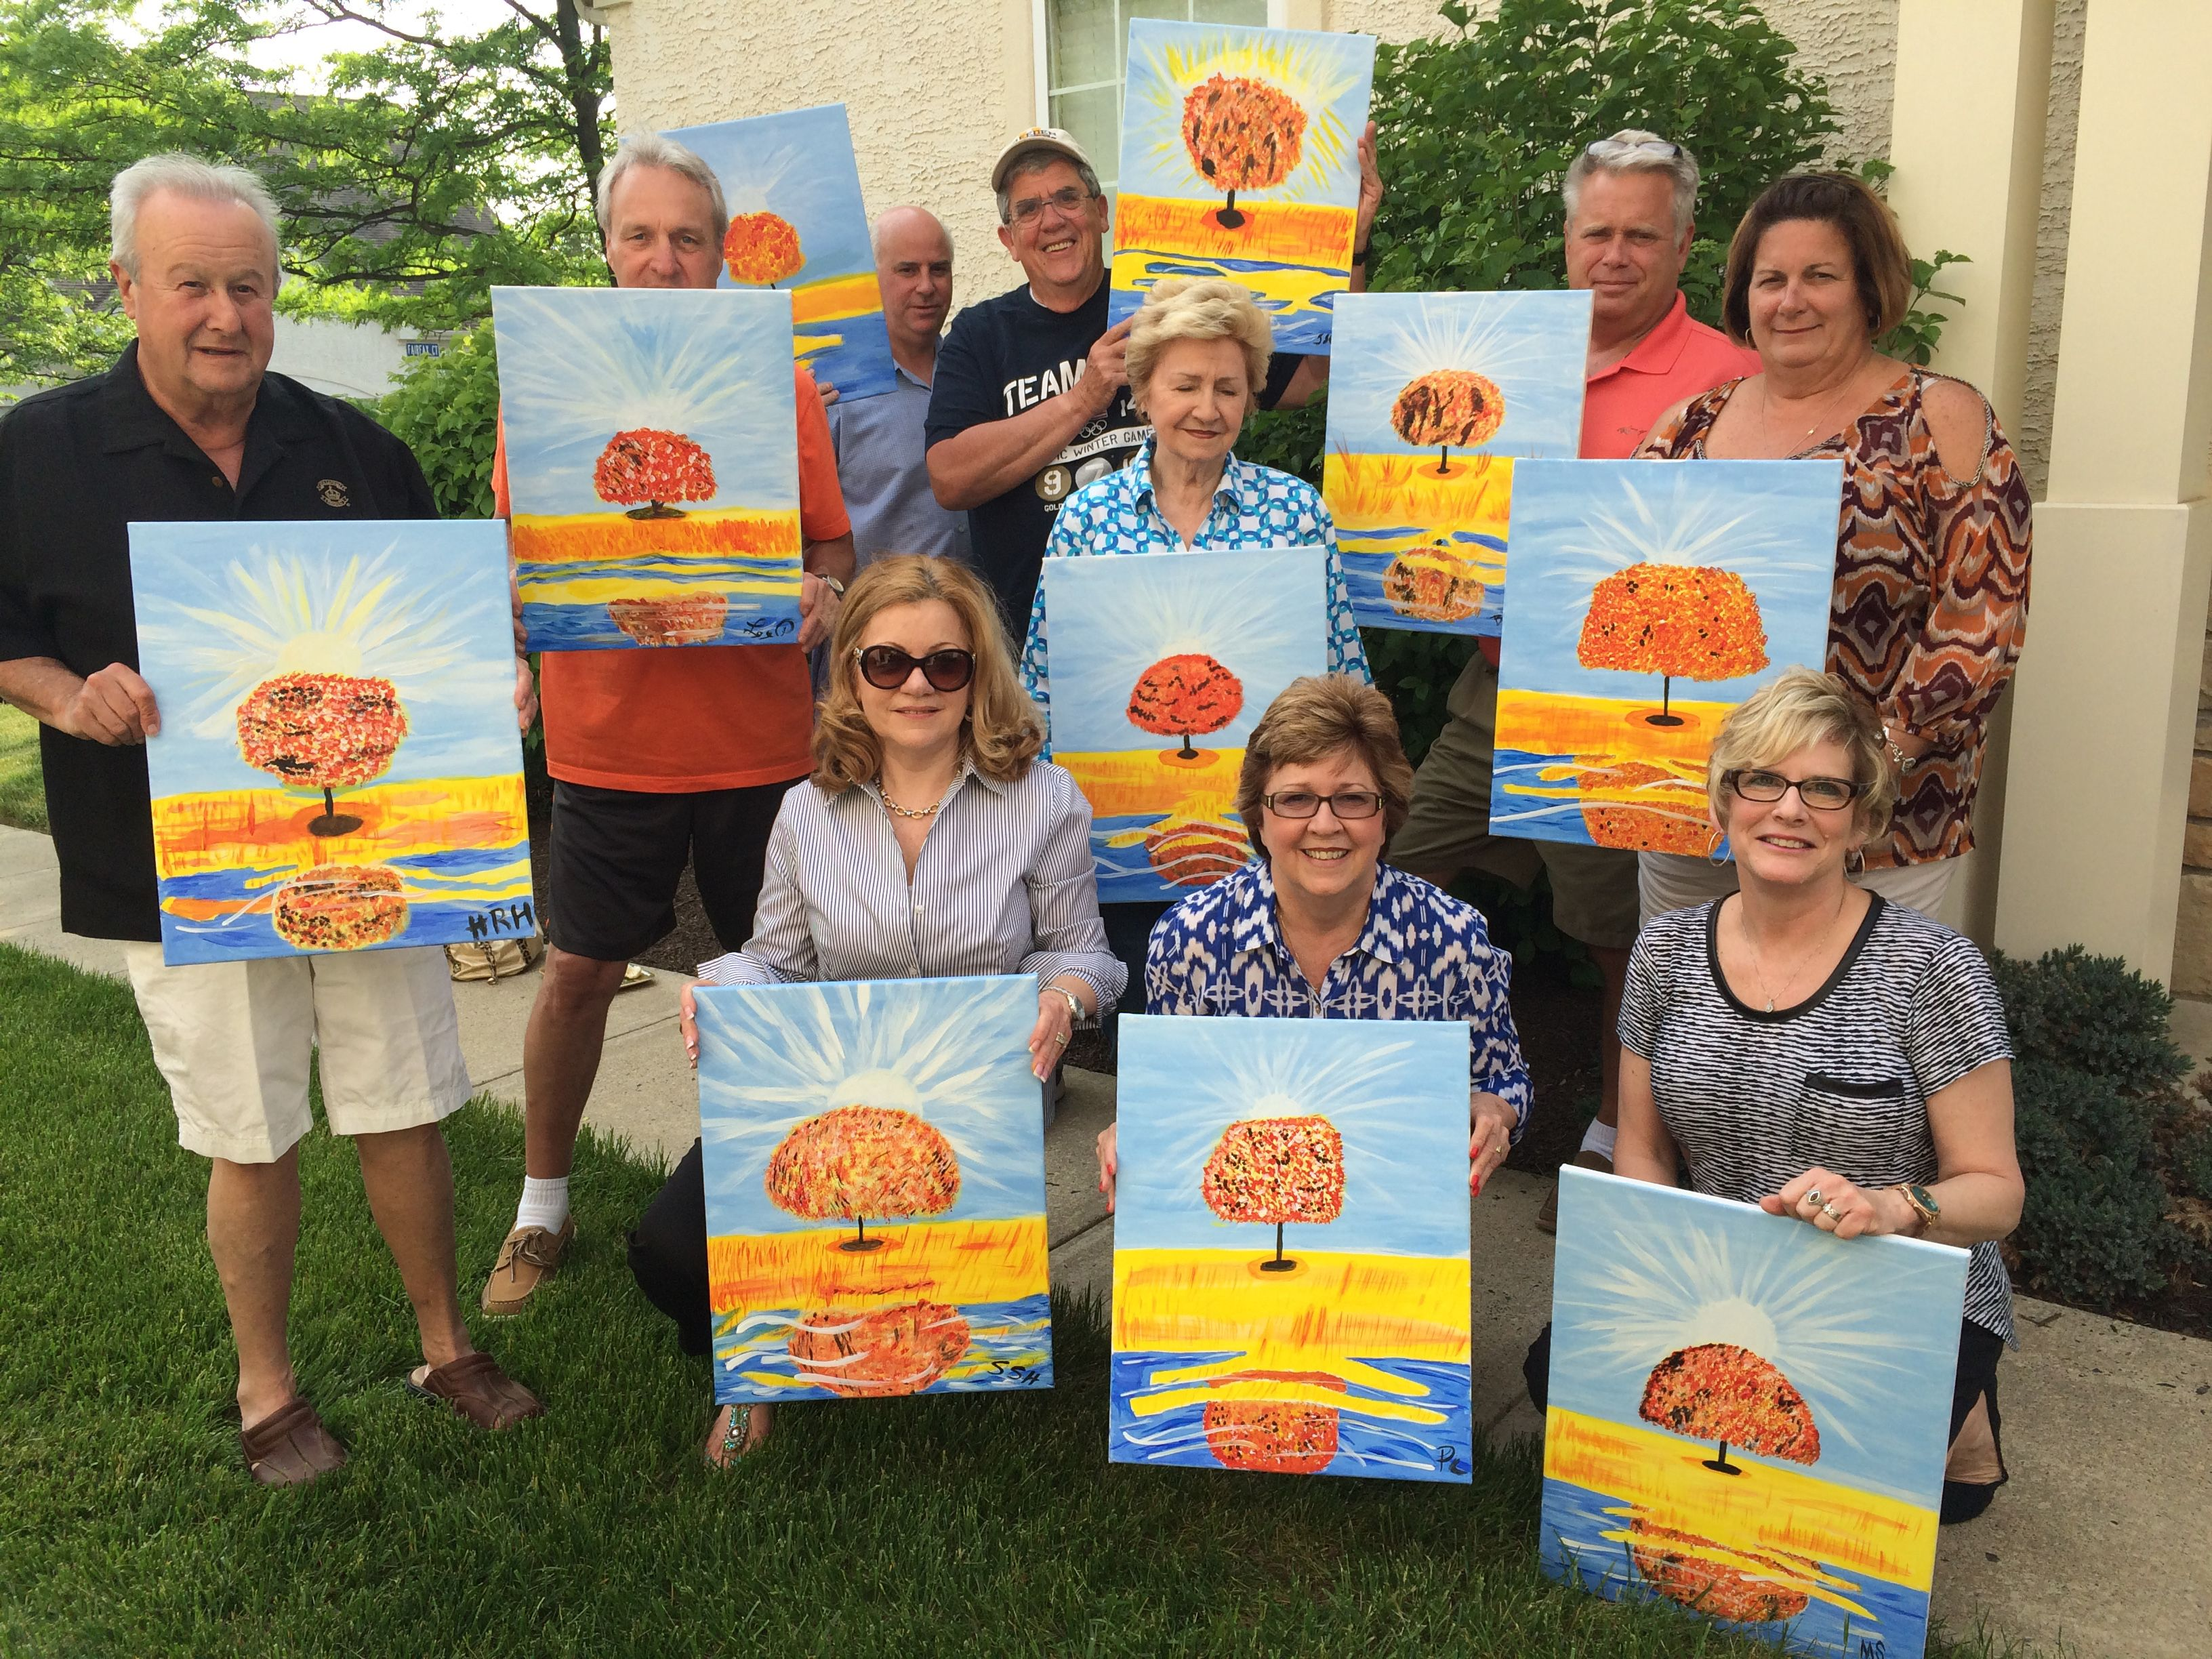 What a FUN way to spend a Sunday afternoon! John Creeden and friends decided to spend their day off enjoying good food, lots of wine and relax, creating beautiful masterpieces at home! They were such a fun group, and John's going to do it again at his place this summer. That's what makes unWINED & PAINT so unique, WE come to YOU!